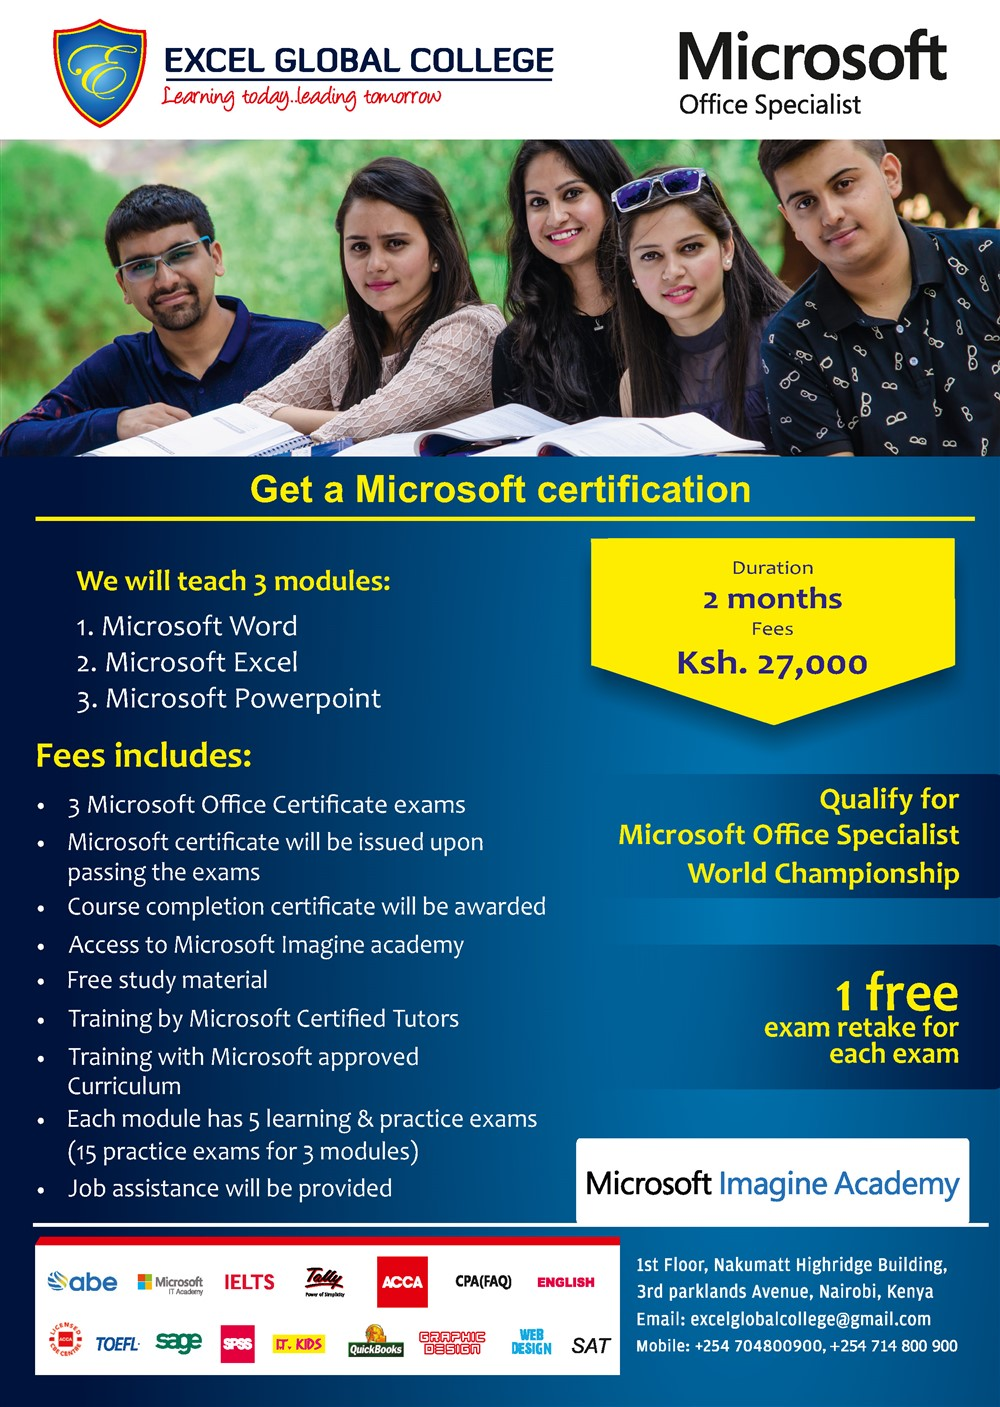 Excel Global College: Get A Microsoft Certification